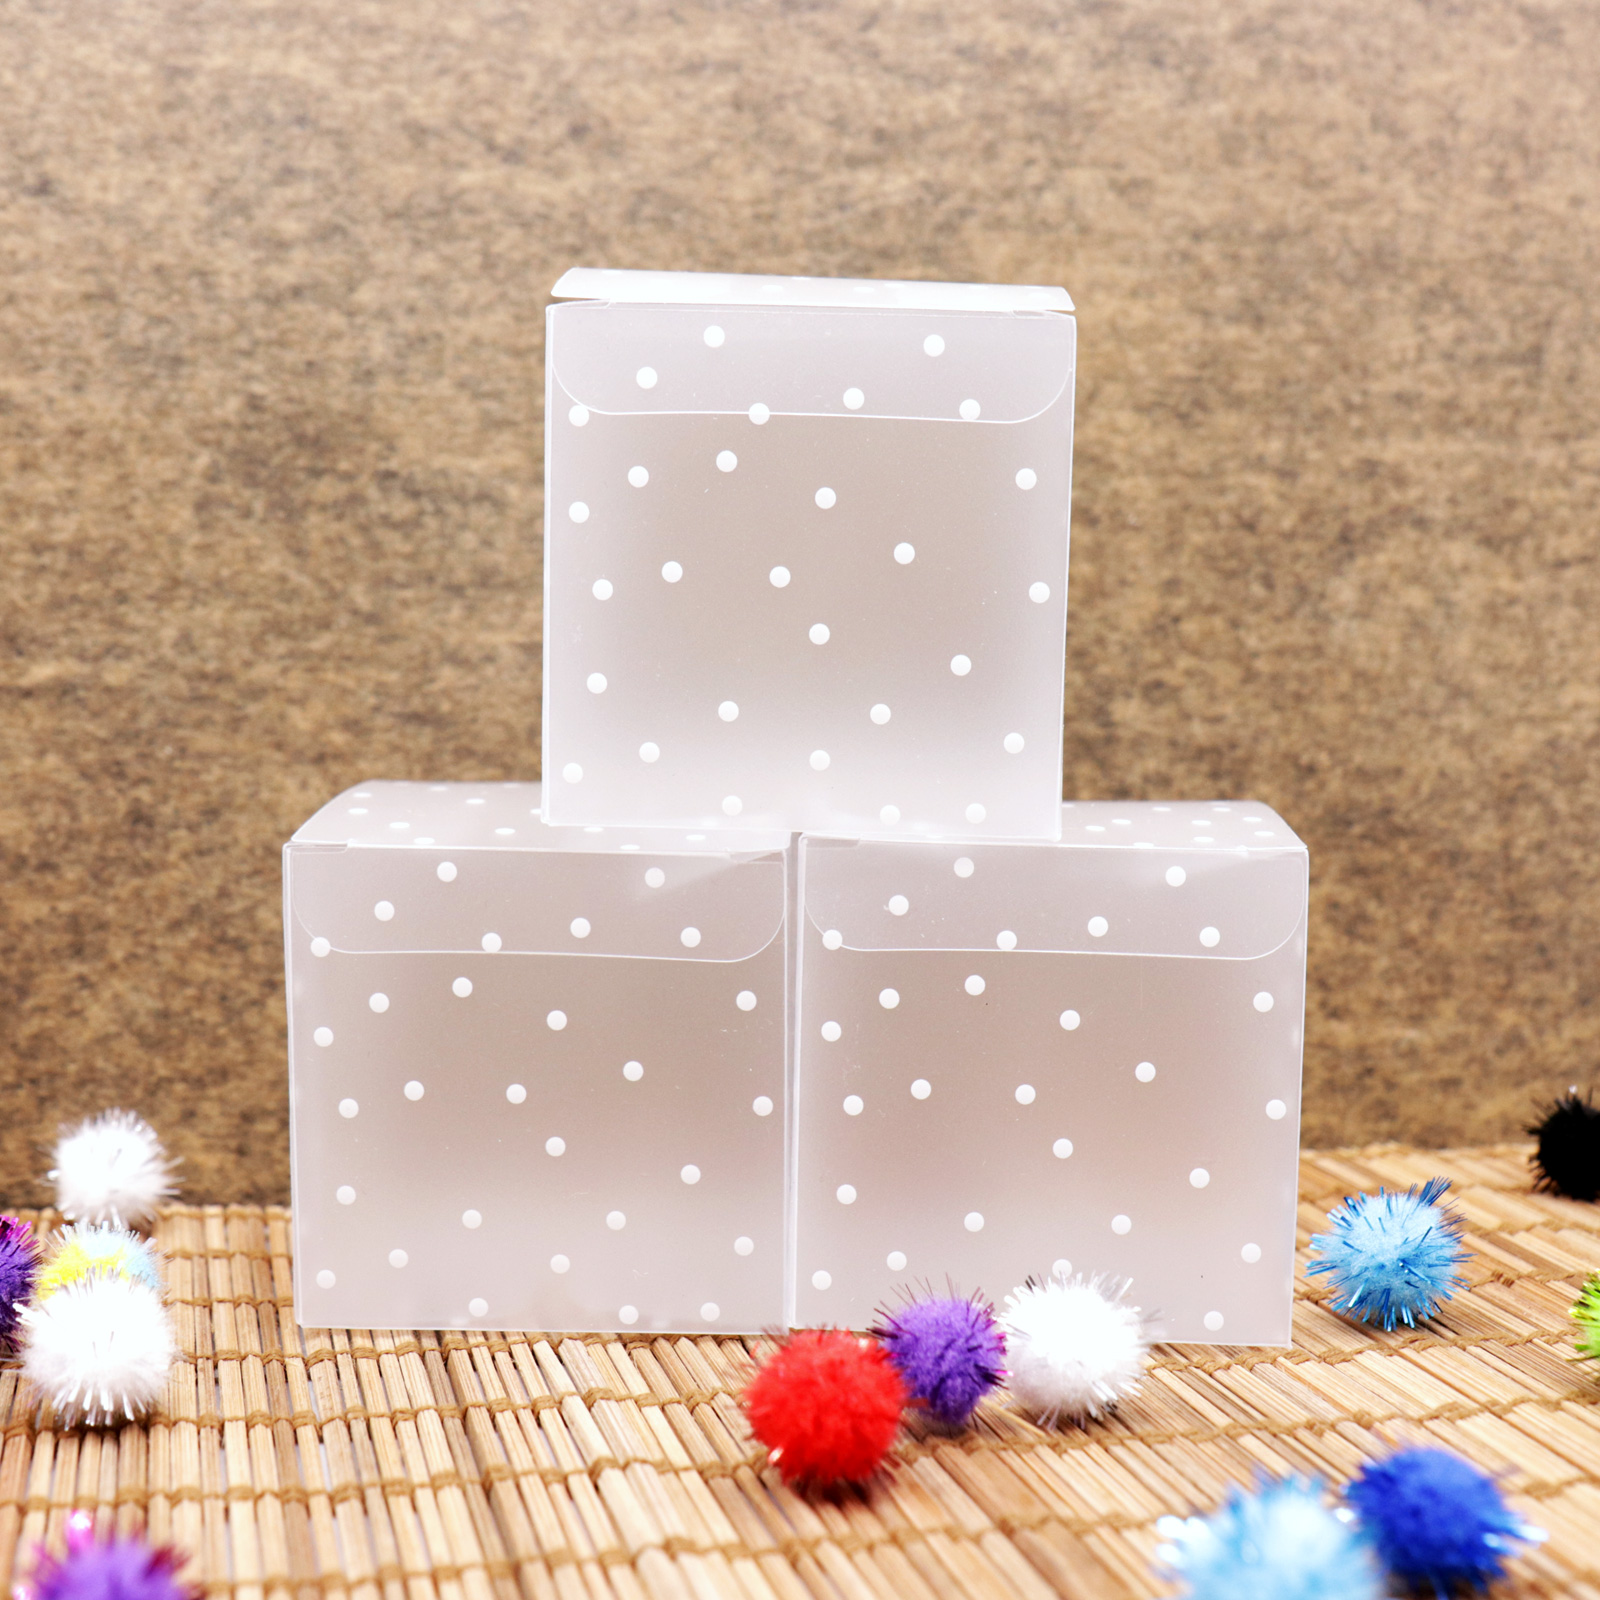 10pcs PVC Transparent Square Dot Candy Box Chocolate Package Gift Box Wedding Favor Baby Shower Birthday Party Caja De Dulces